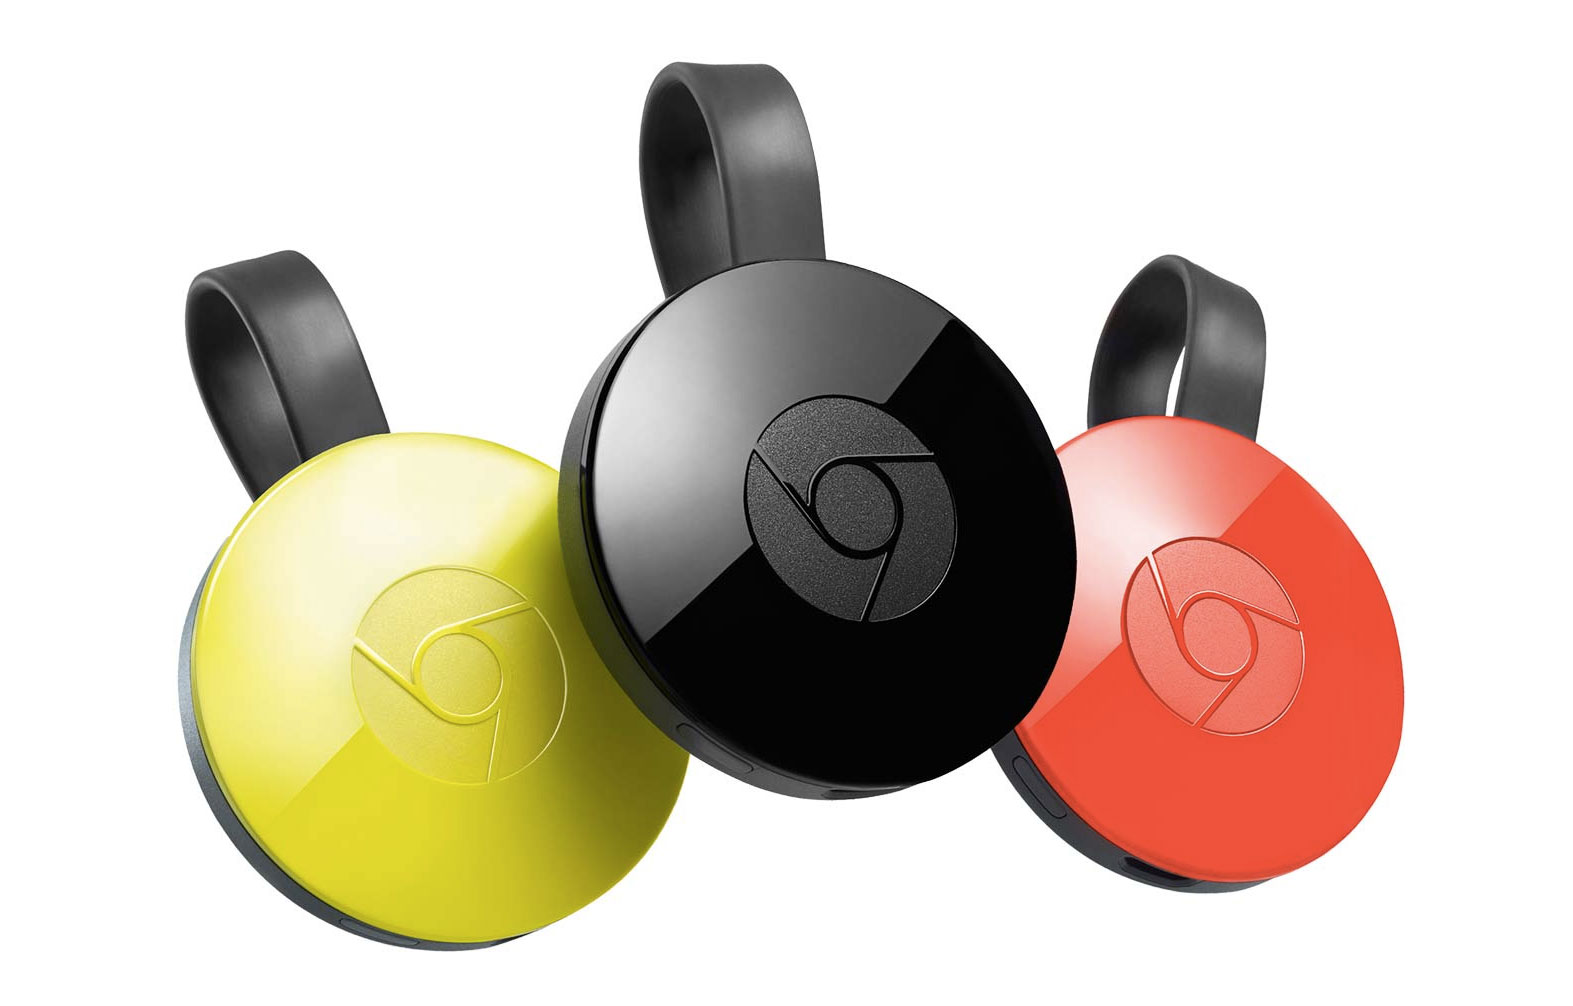 chrome cast Shop for chromecast at best buy find low everyday prices and buy online for delivery or in-store pick-up.